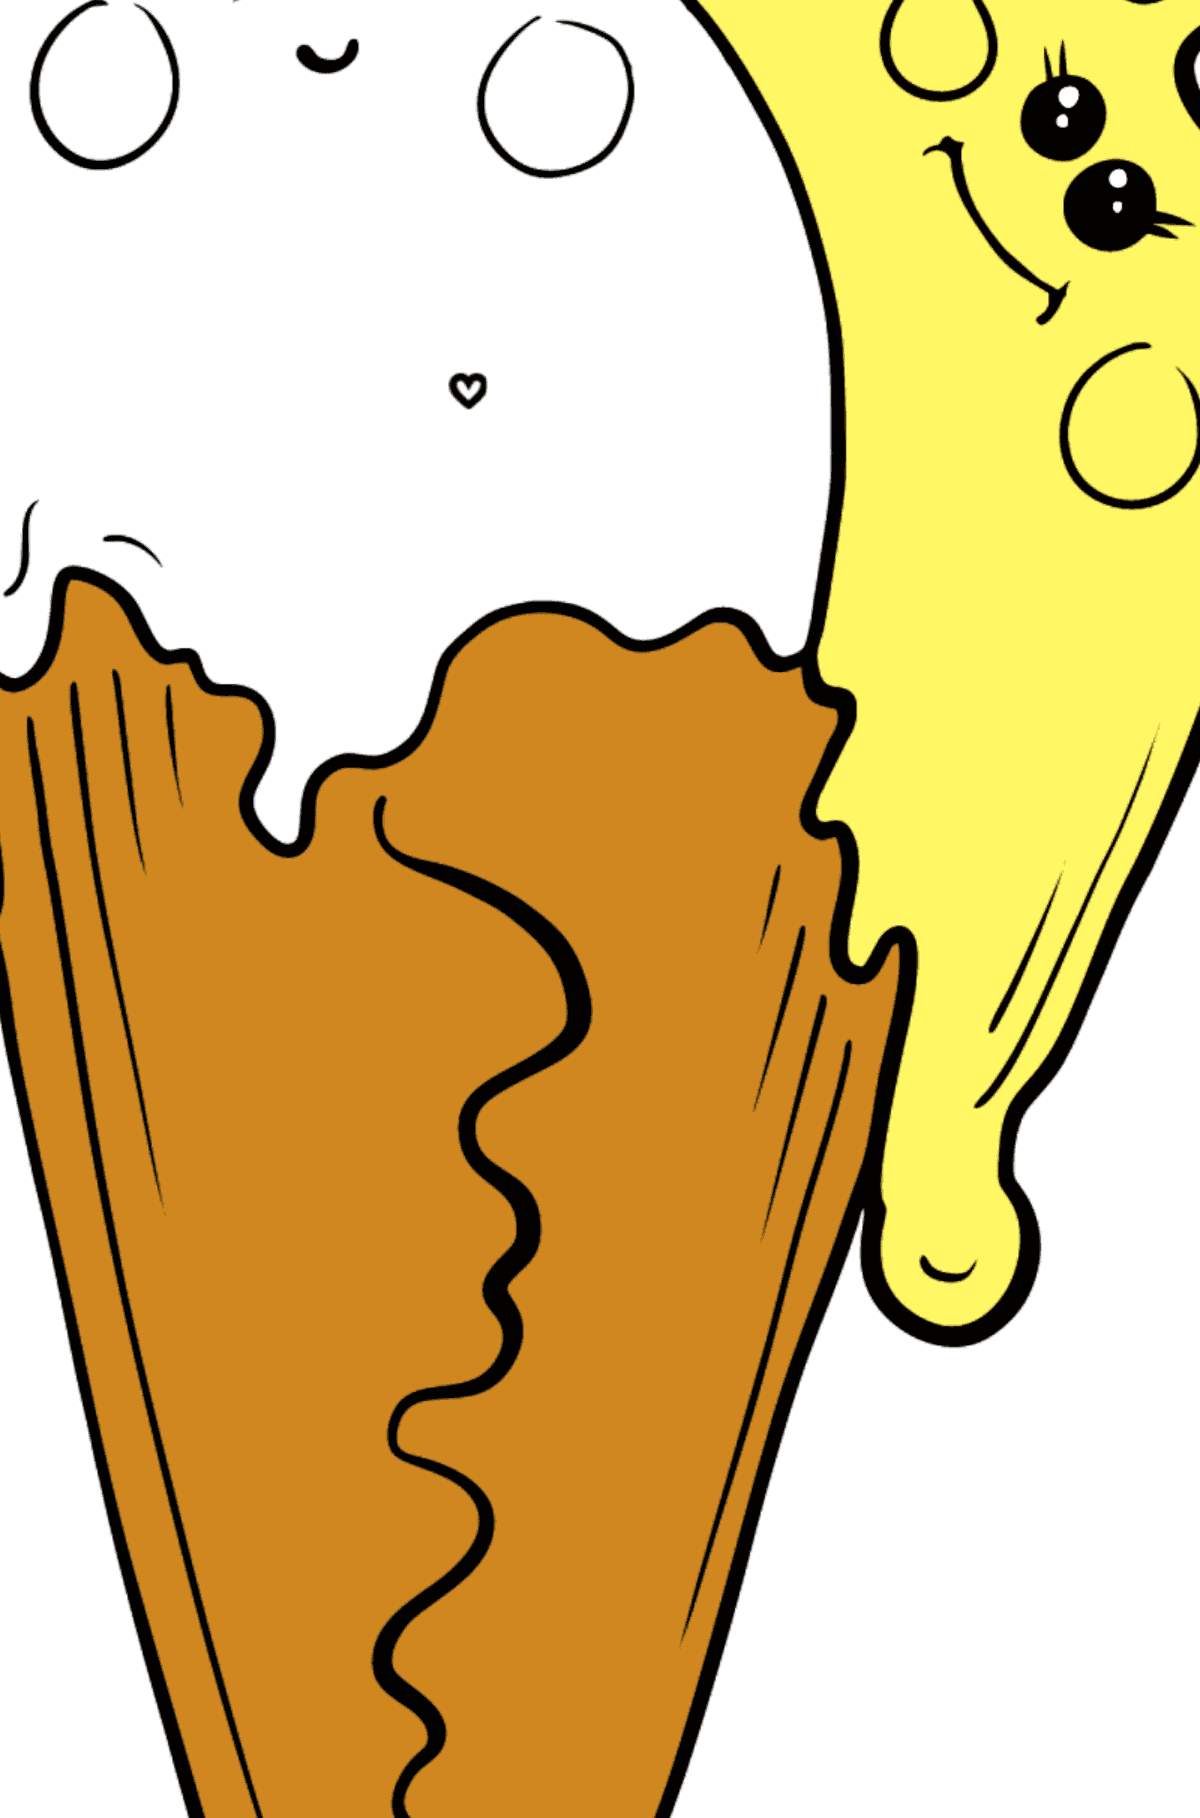 Coloring page - Kawaii Ice Cream (Banana and Strawberry) - Coloring by Geometric Shapes for Kids